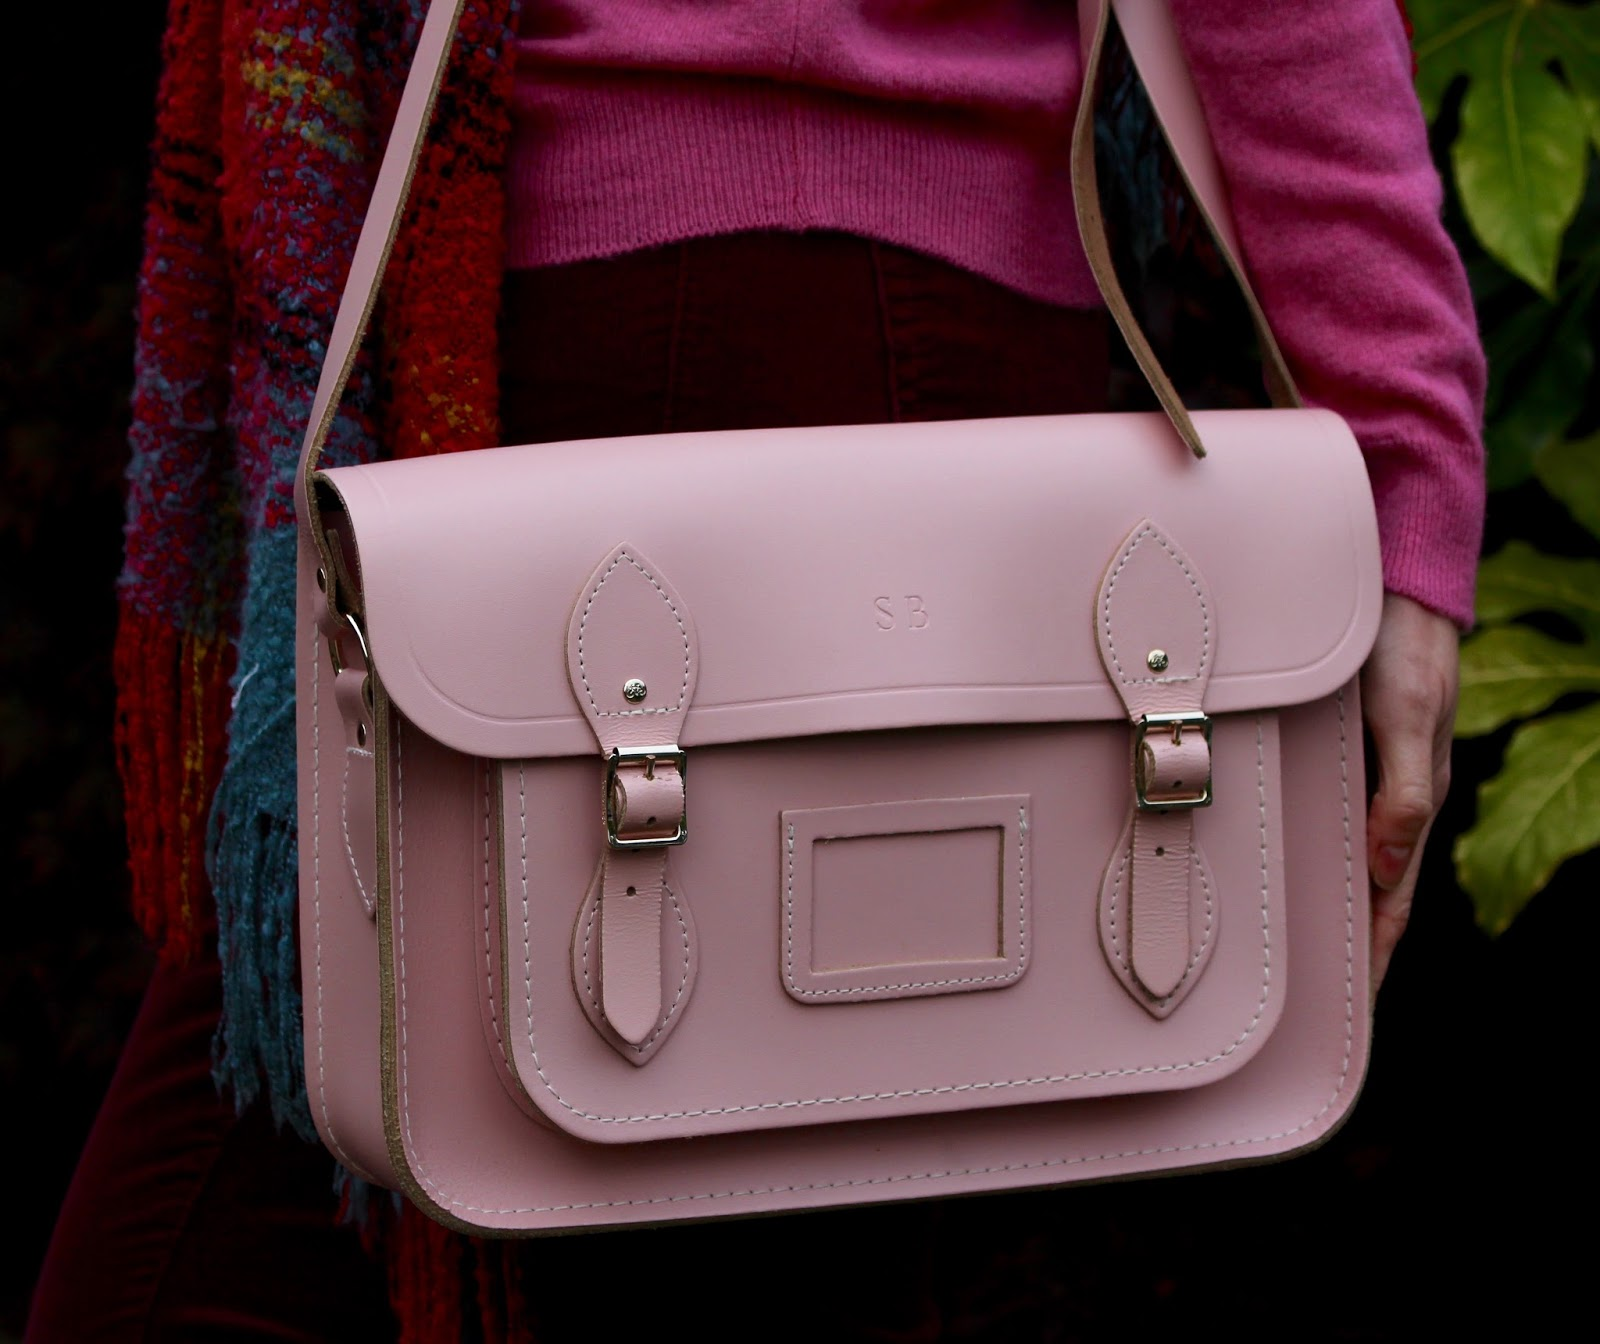 Pink satchel from Cambridge satchel company | Fake fabulous.